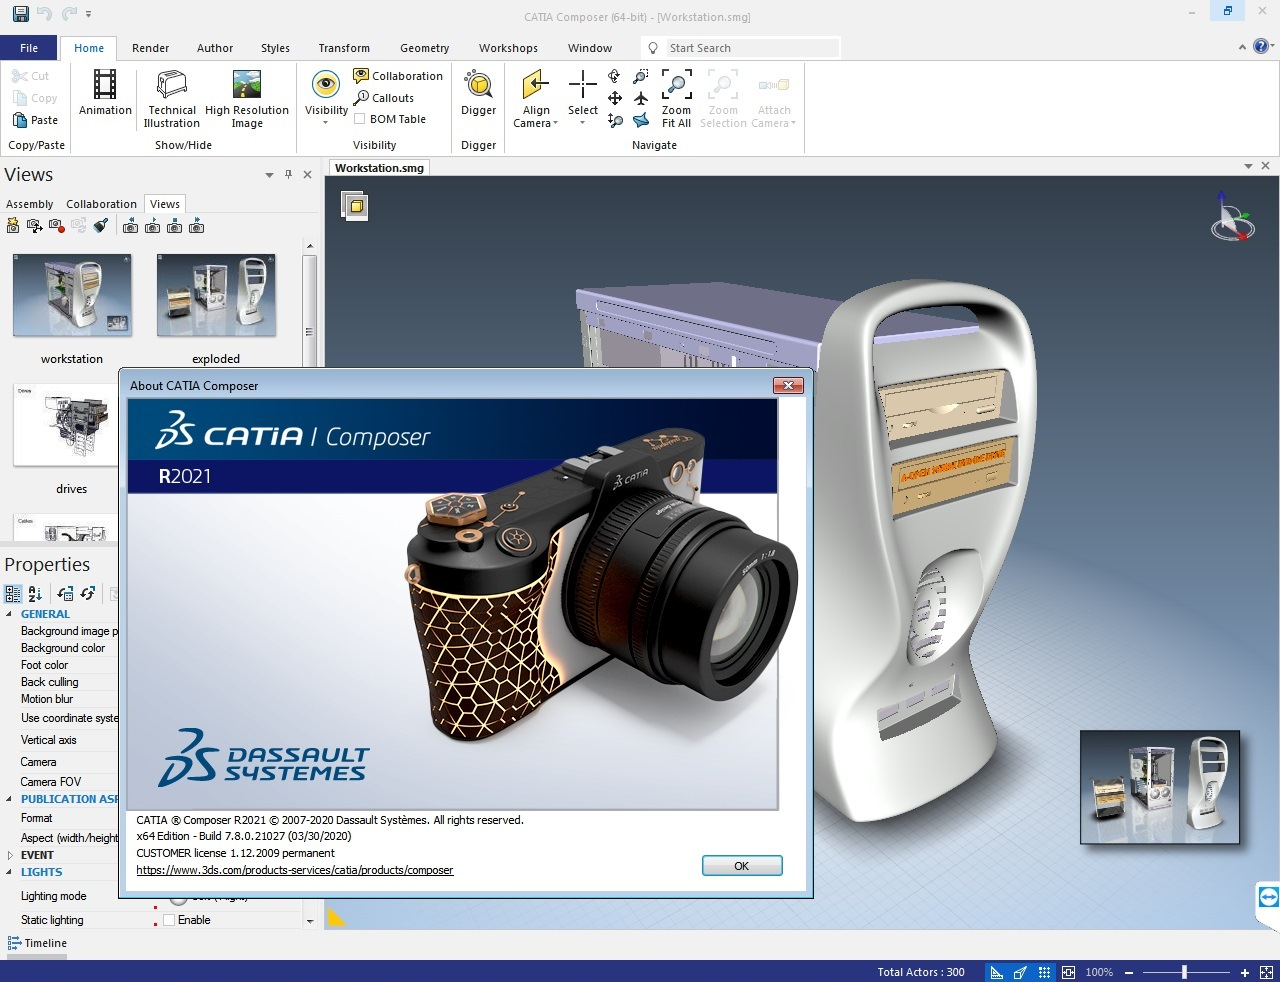 Working with DS CATIA Composer R2021 full license